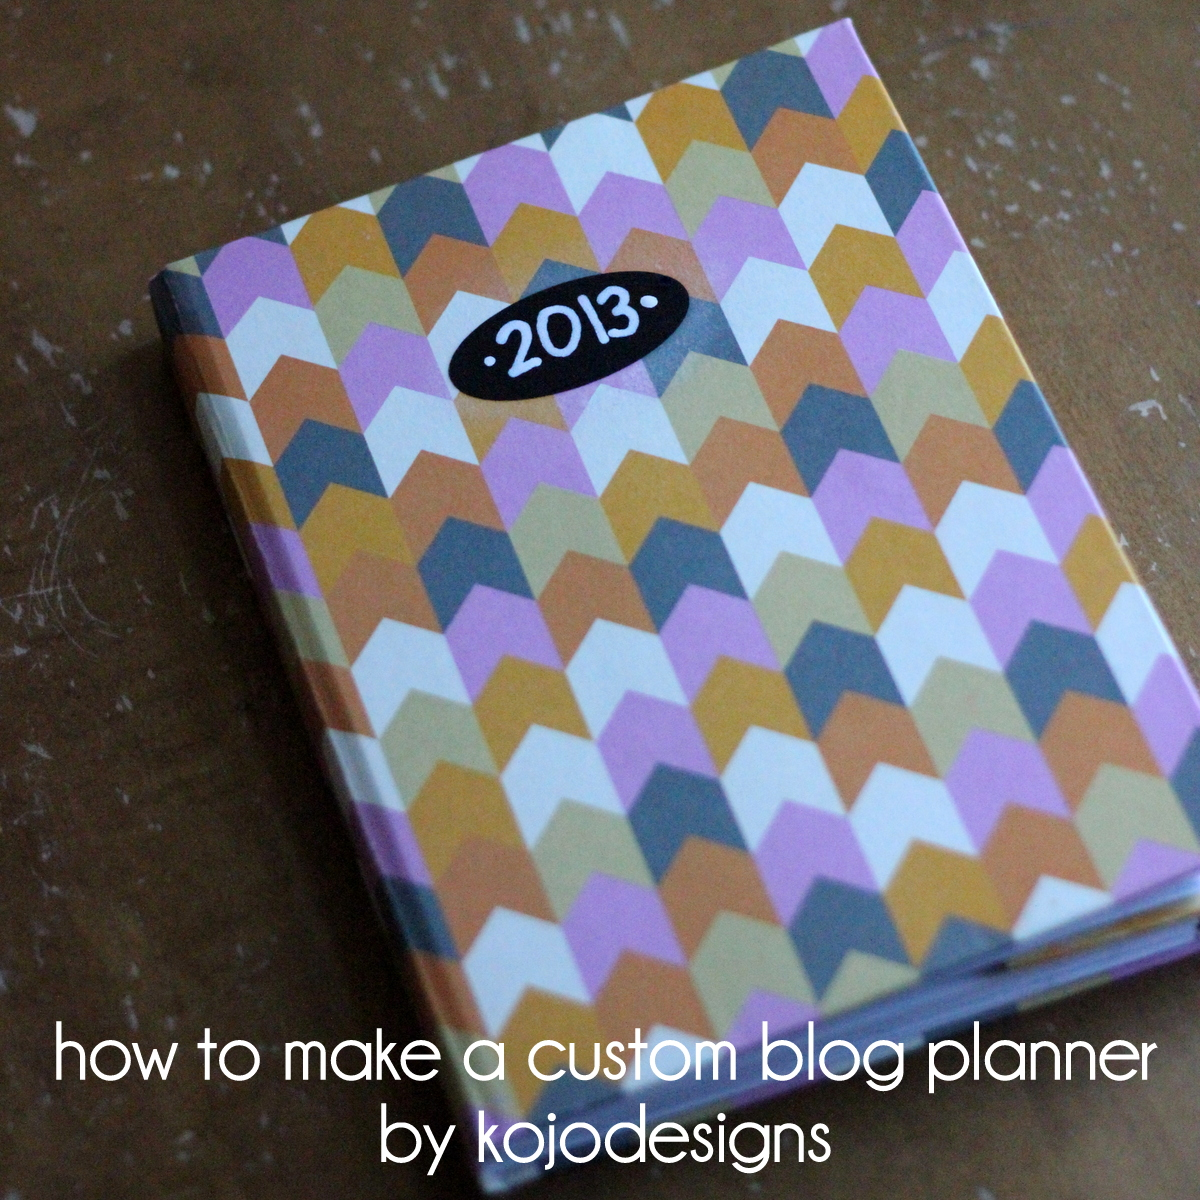 how to make your own custom blog planner by kojodesigns